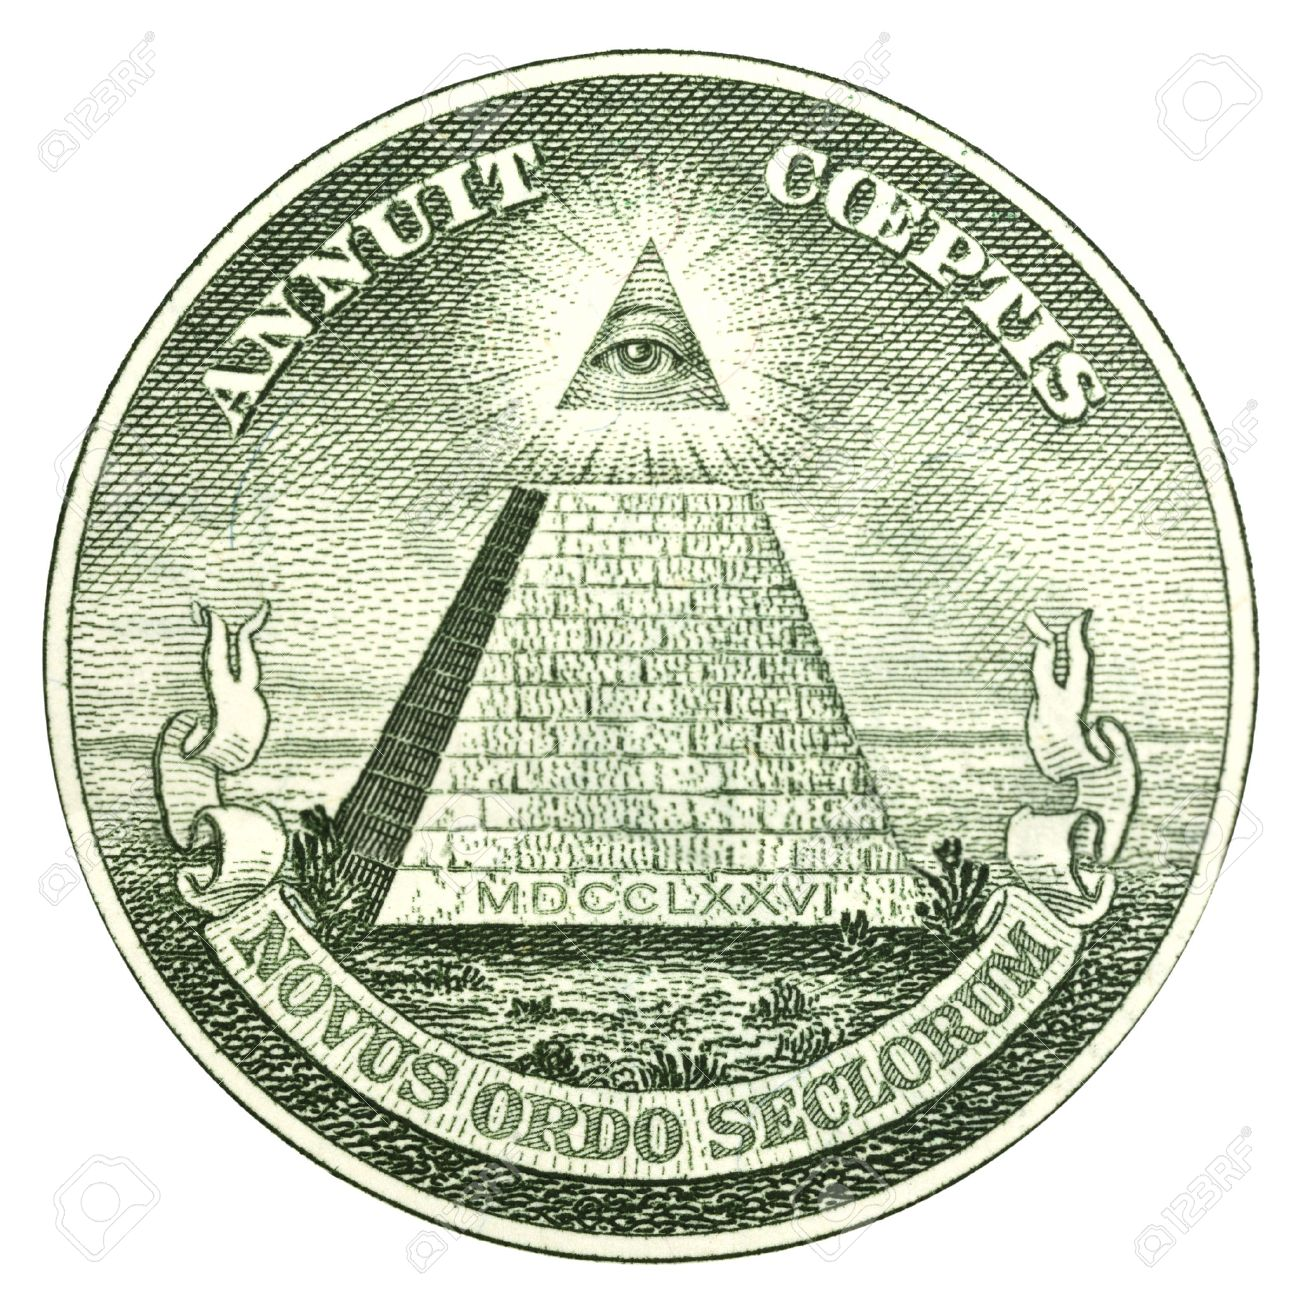 27262618-the-great-seal-of-the-united-states-from-the-reverse-of-a-one-dollar-bill.jpg